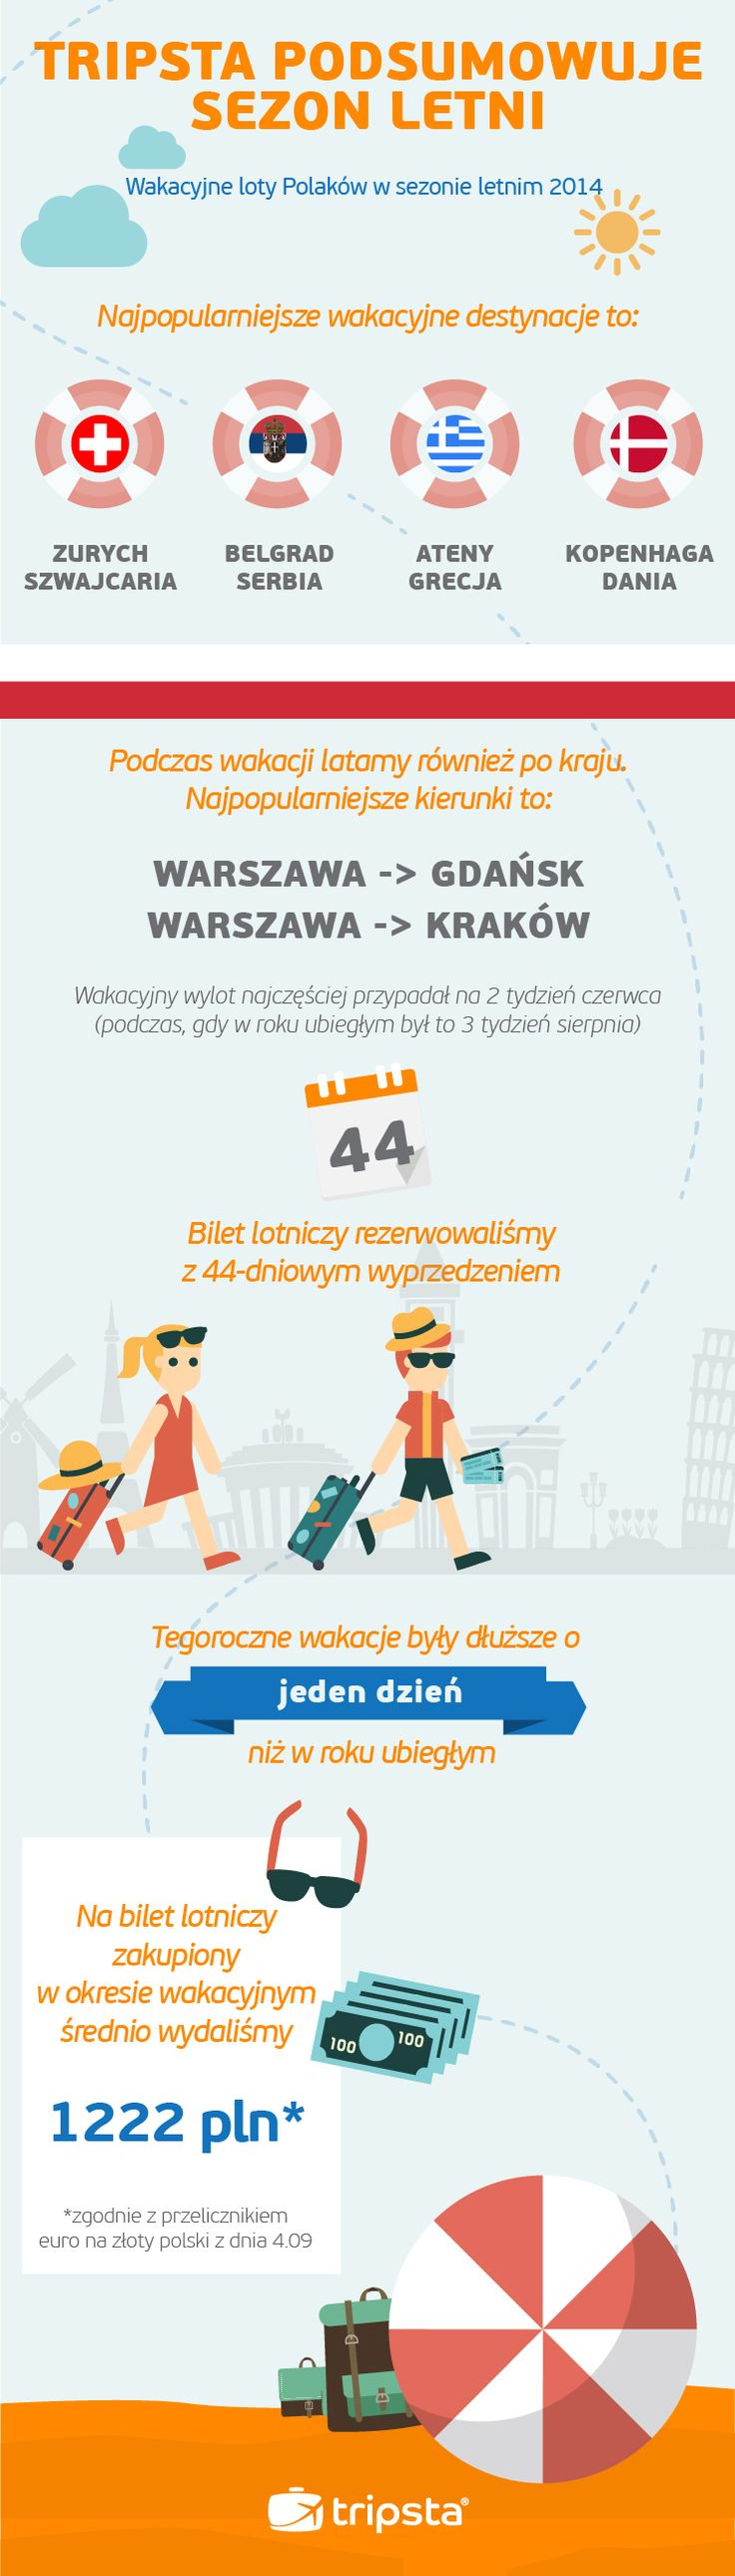 Summer Trends in Poland #Tripsta #Infographic